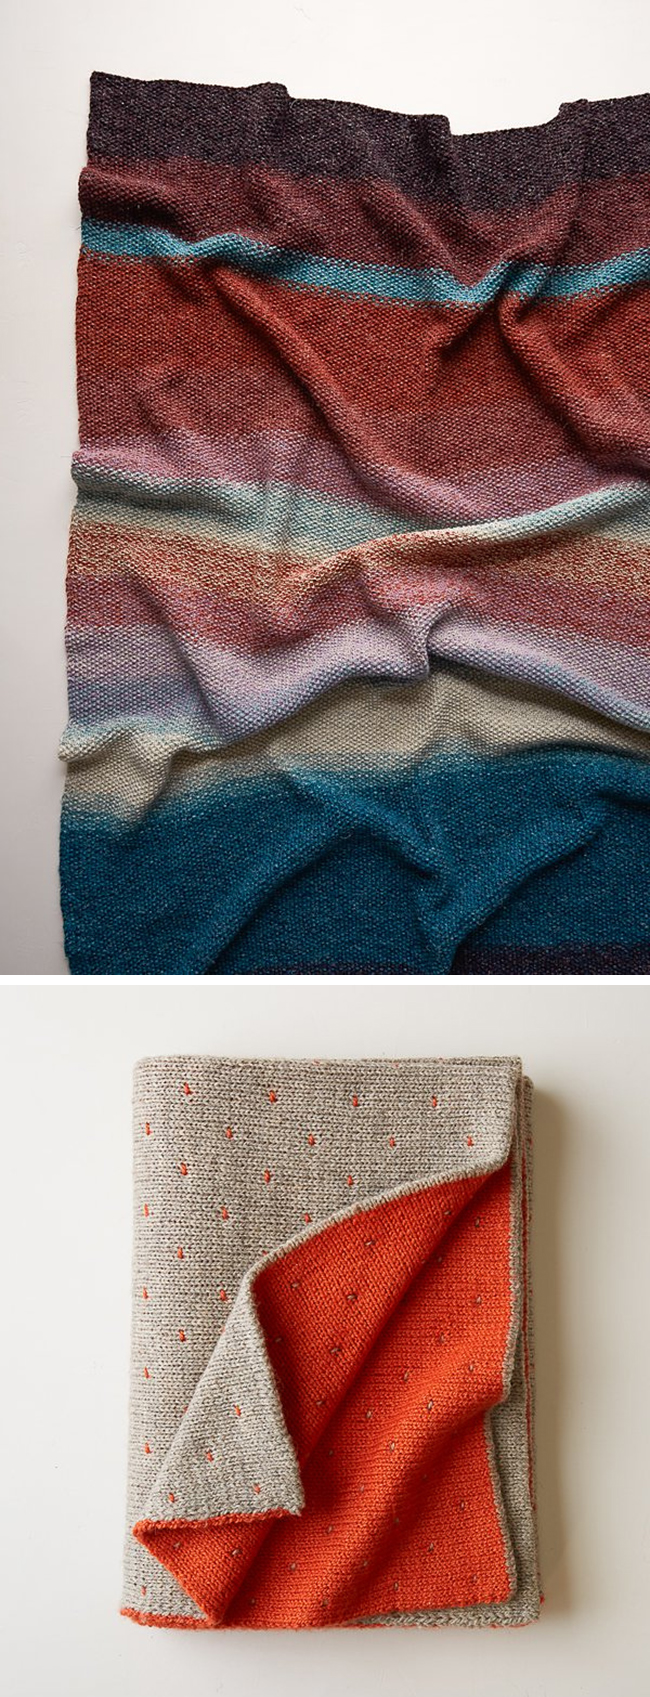 New Favorites: Blanket temptations